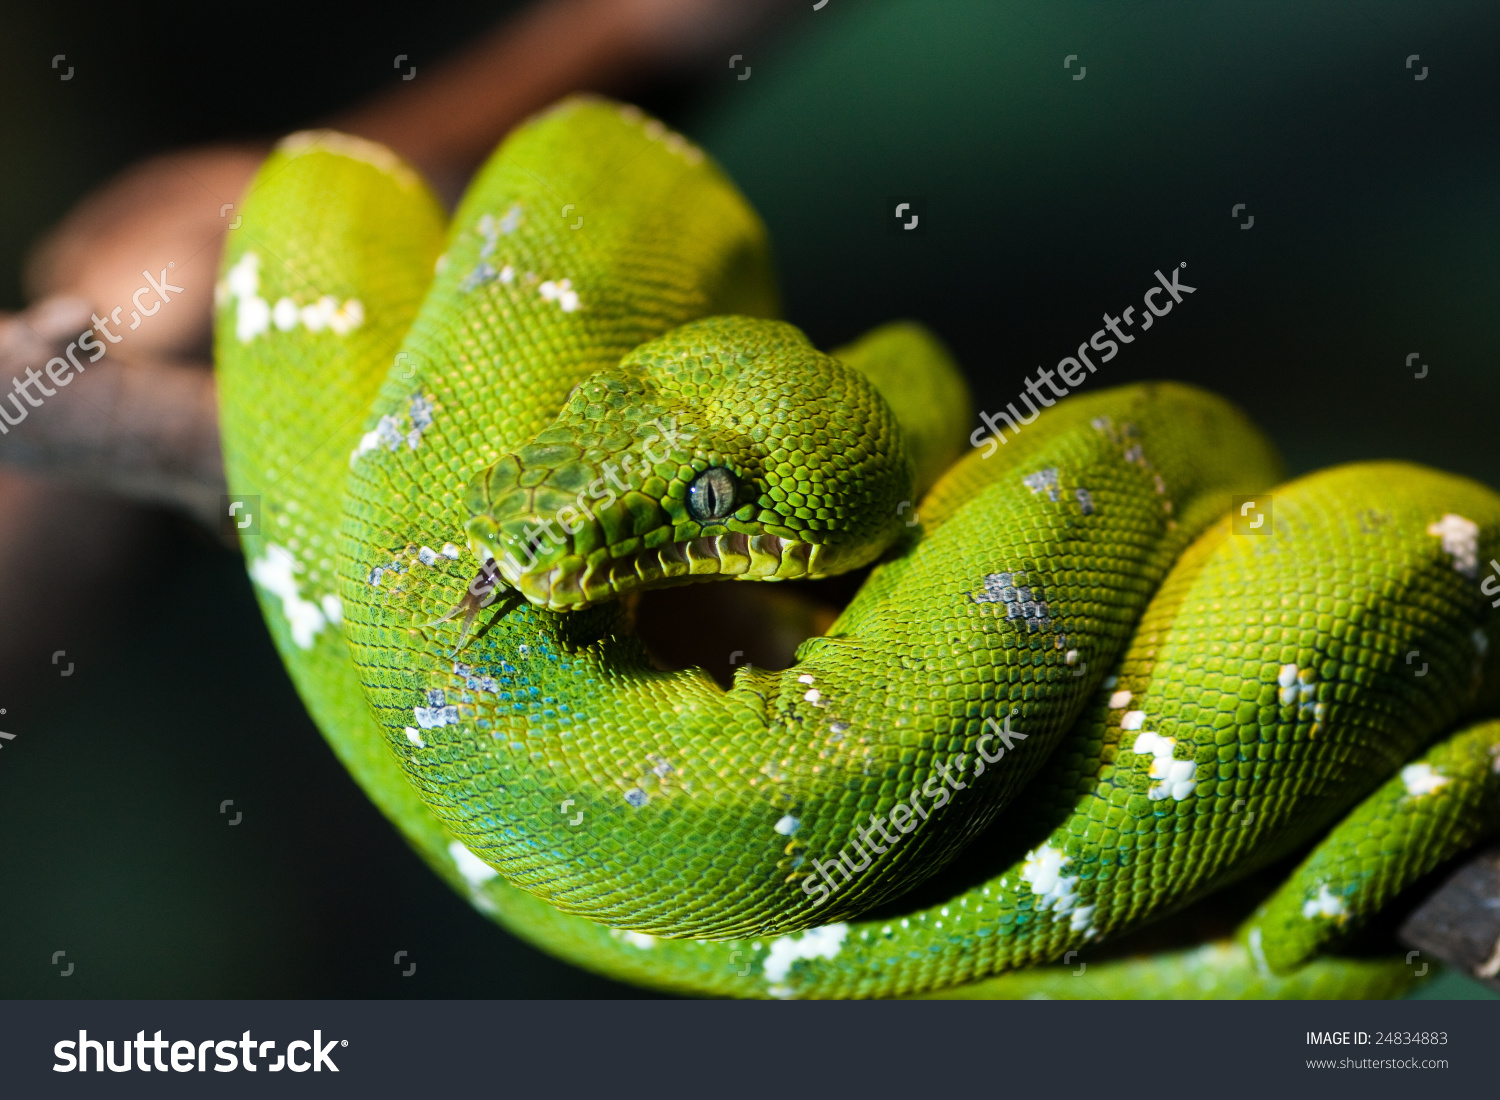 Emerald Tree Boa clipart #7, Download drawings